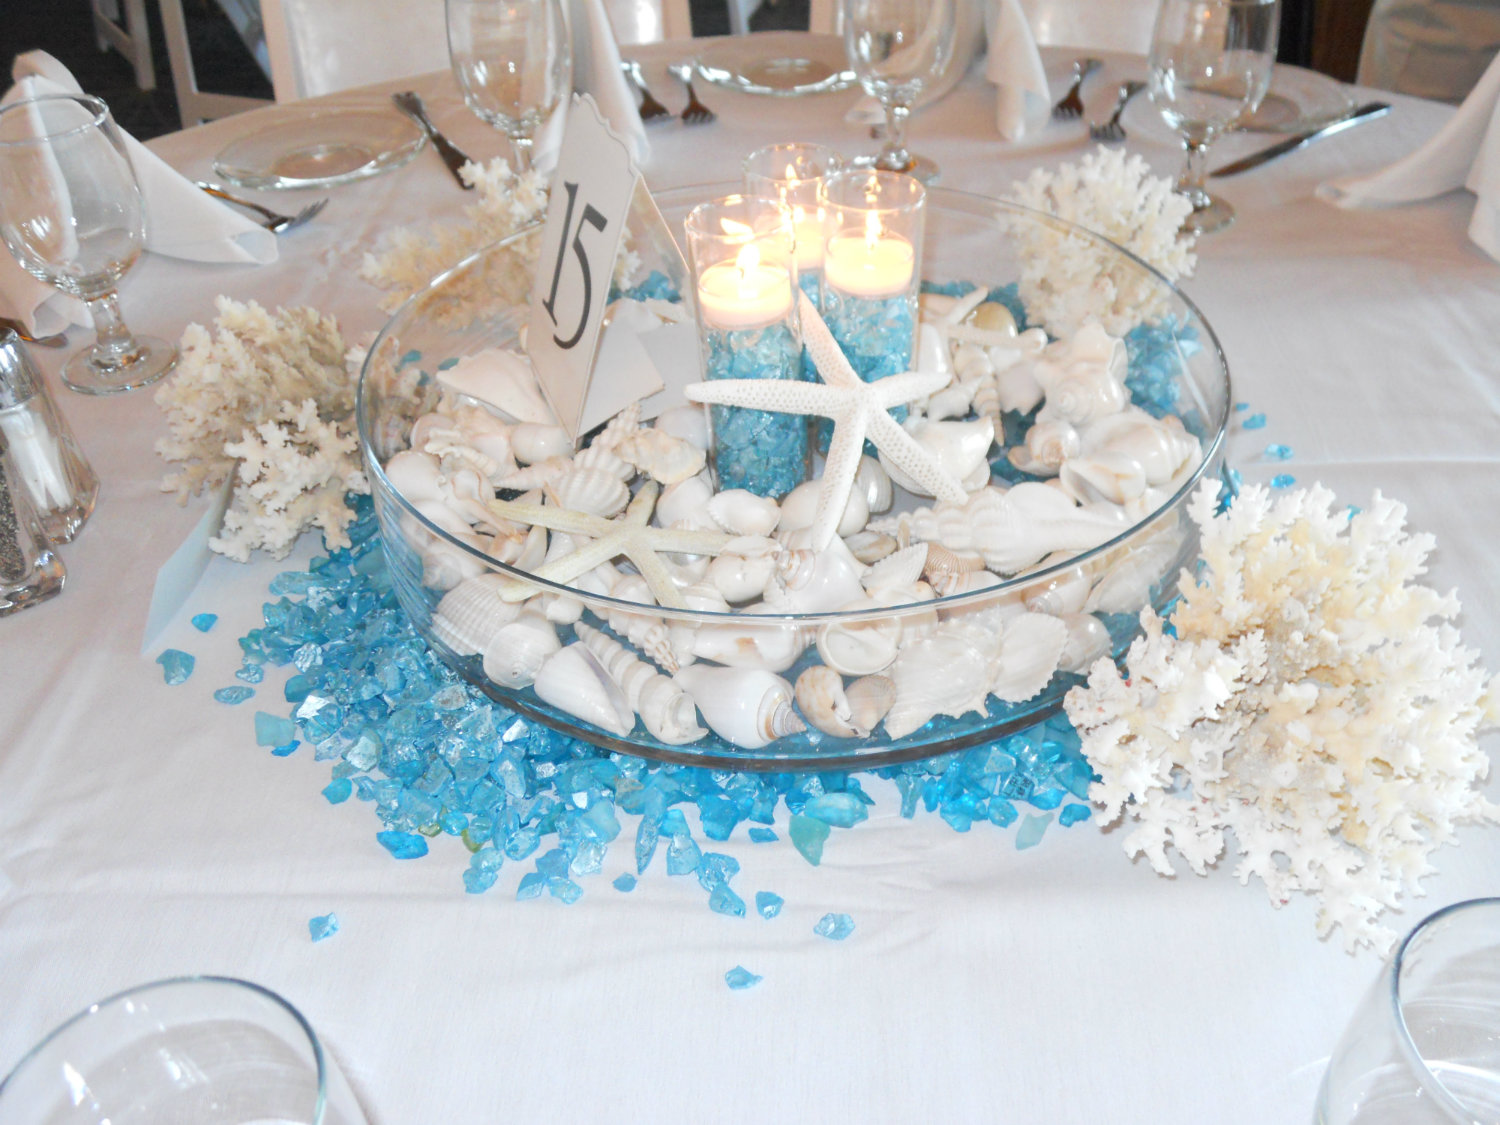 Liven your look and save money with do it yourself wedding liven your look and save money with do it yourself wedding centerpieces solutioingenieria Choice Image